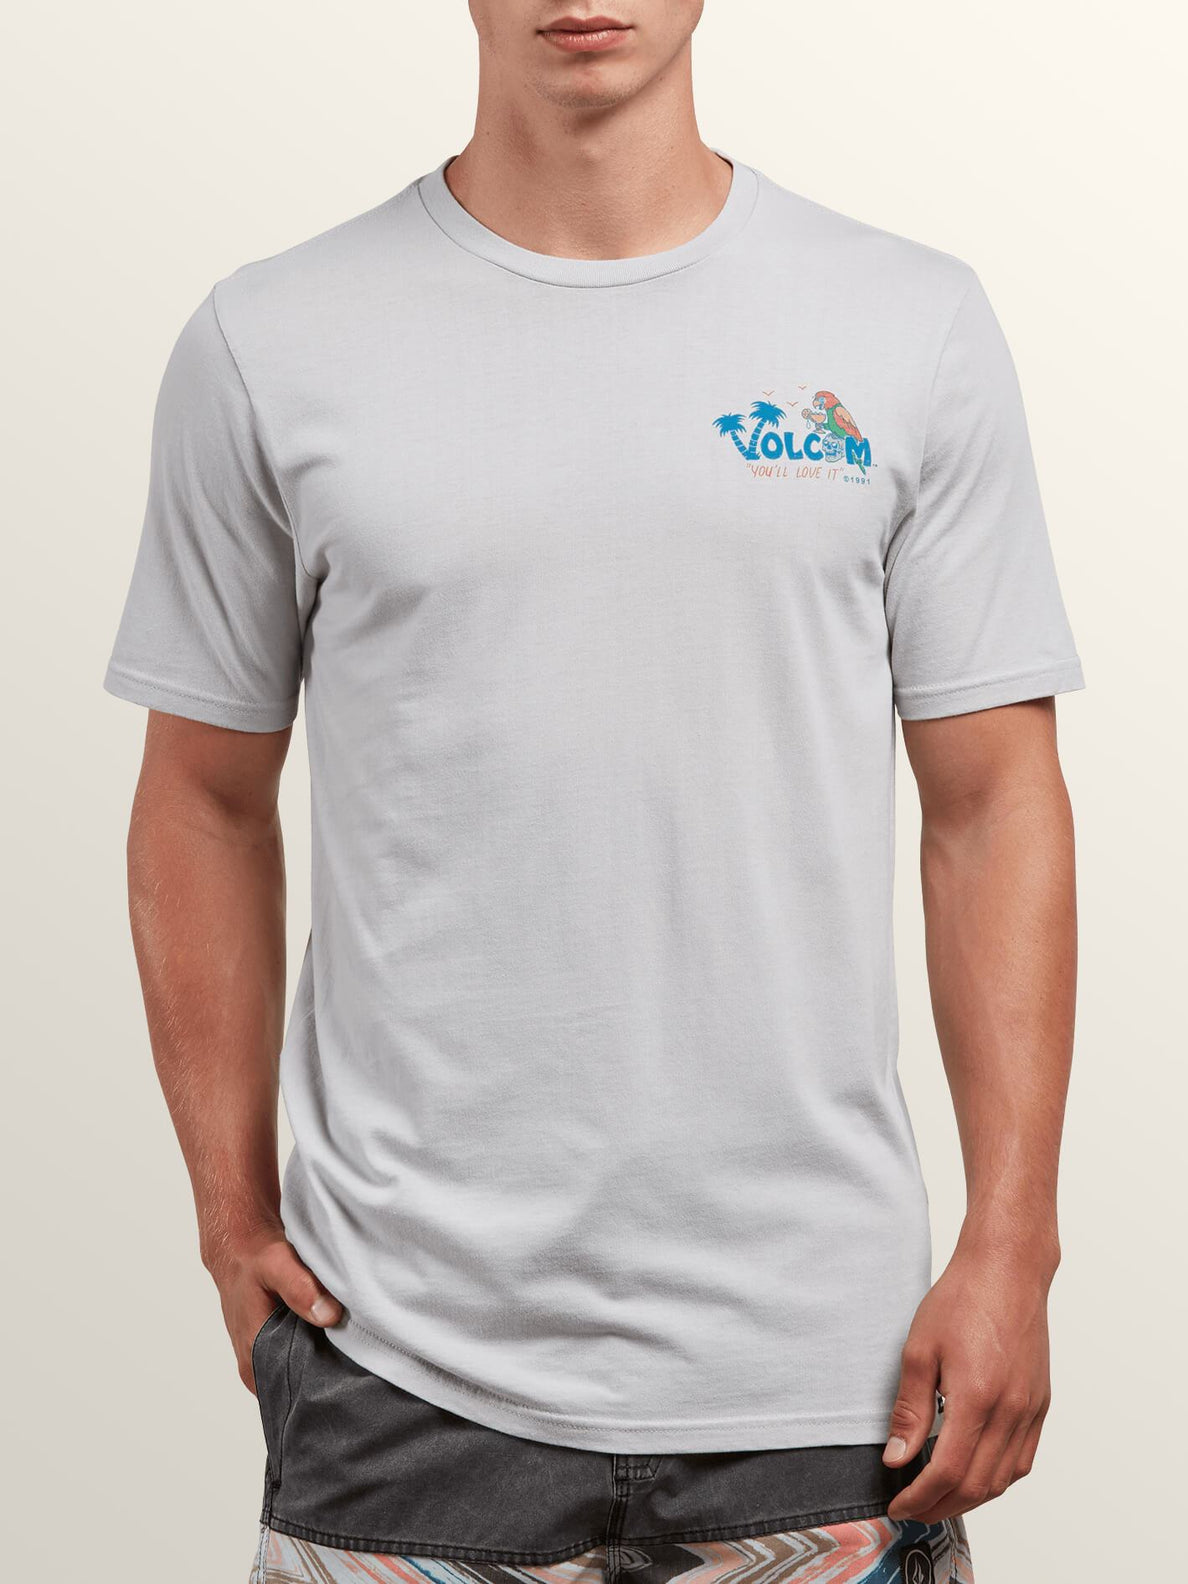 El Loro Loco Short Sleeve Tee In Off White, Front View